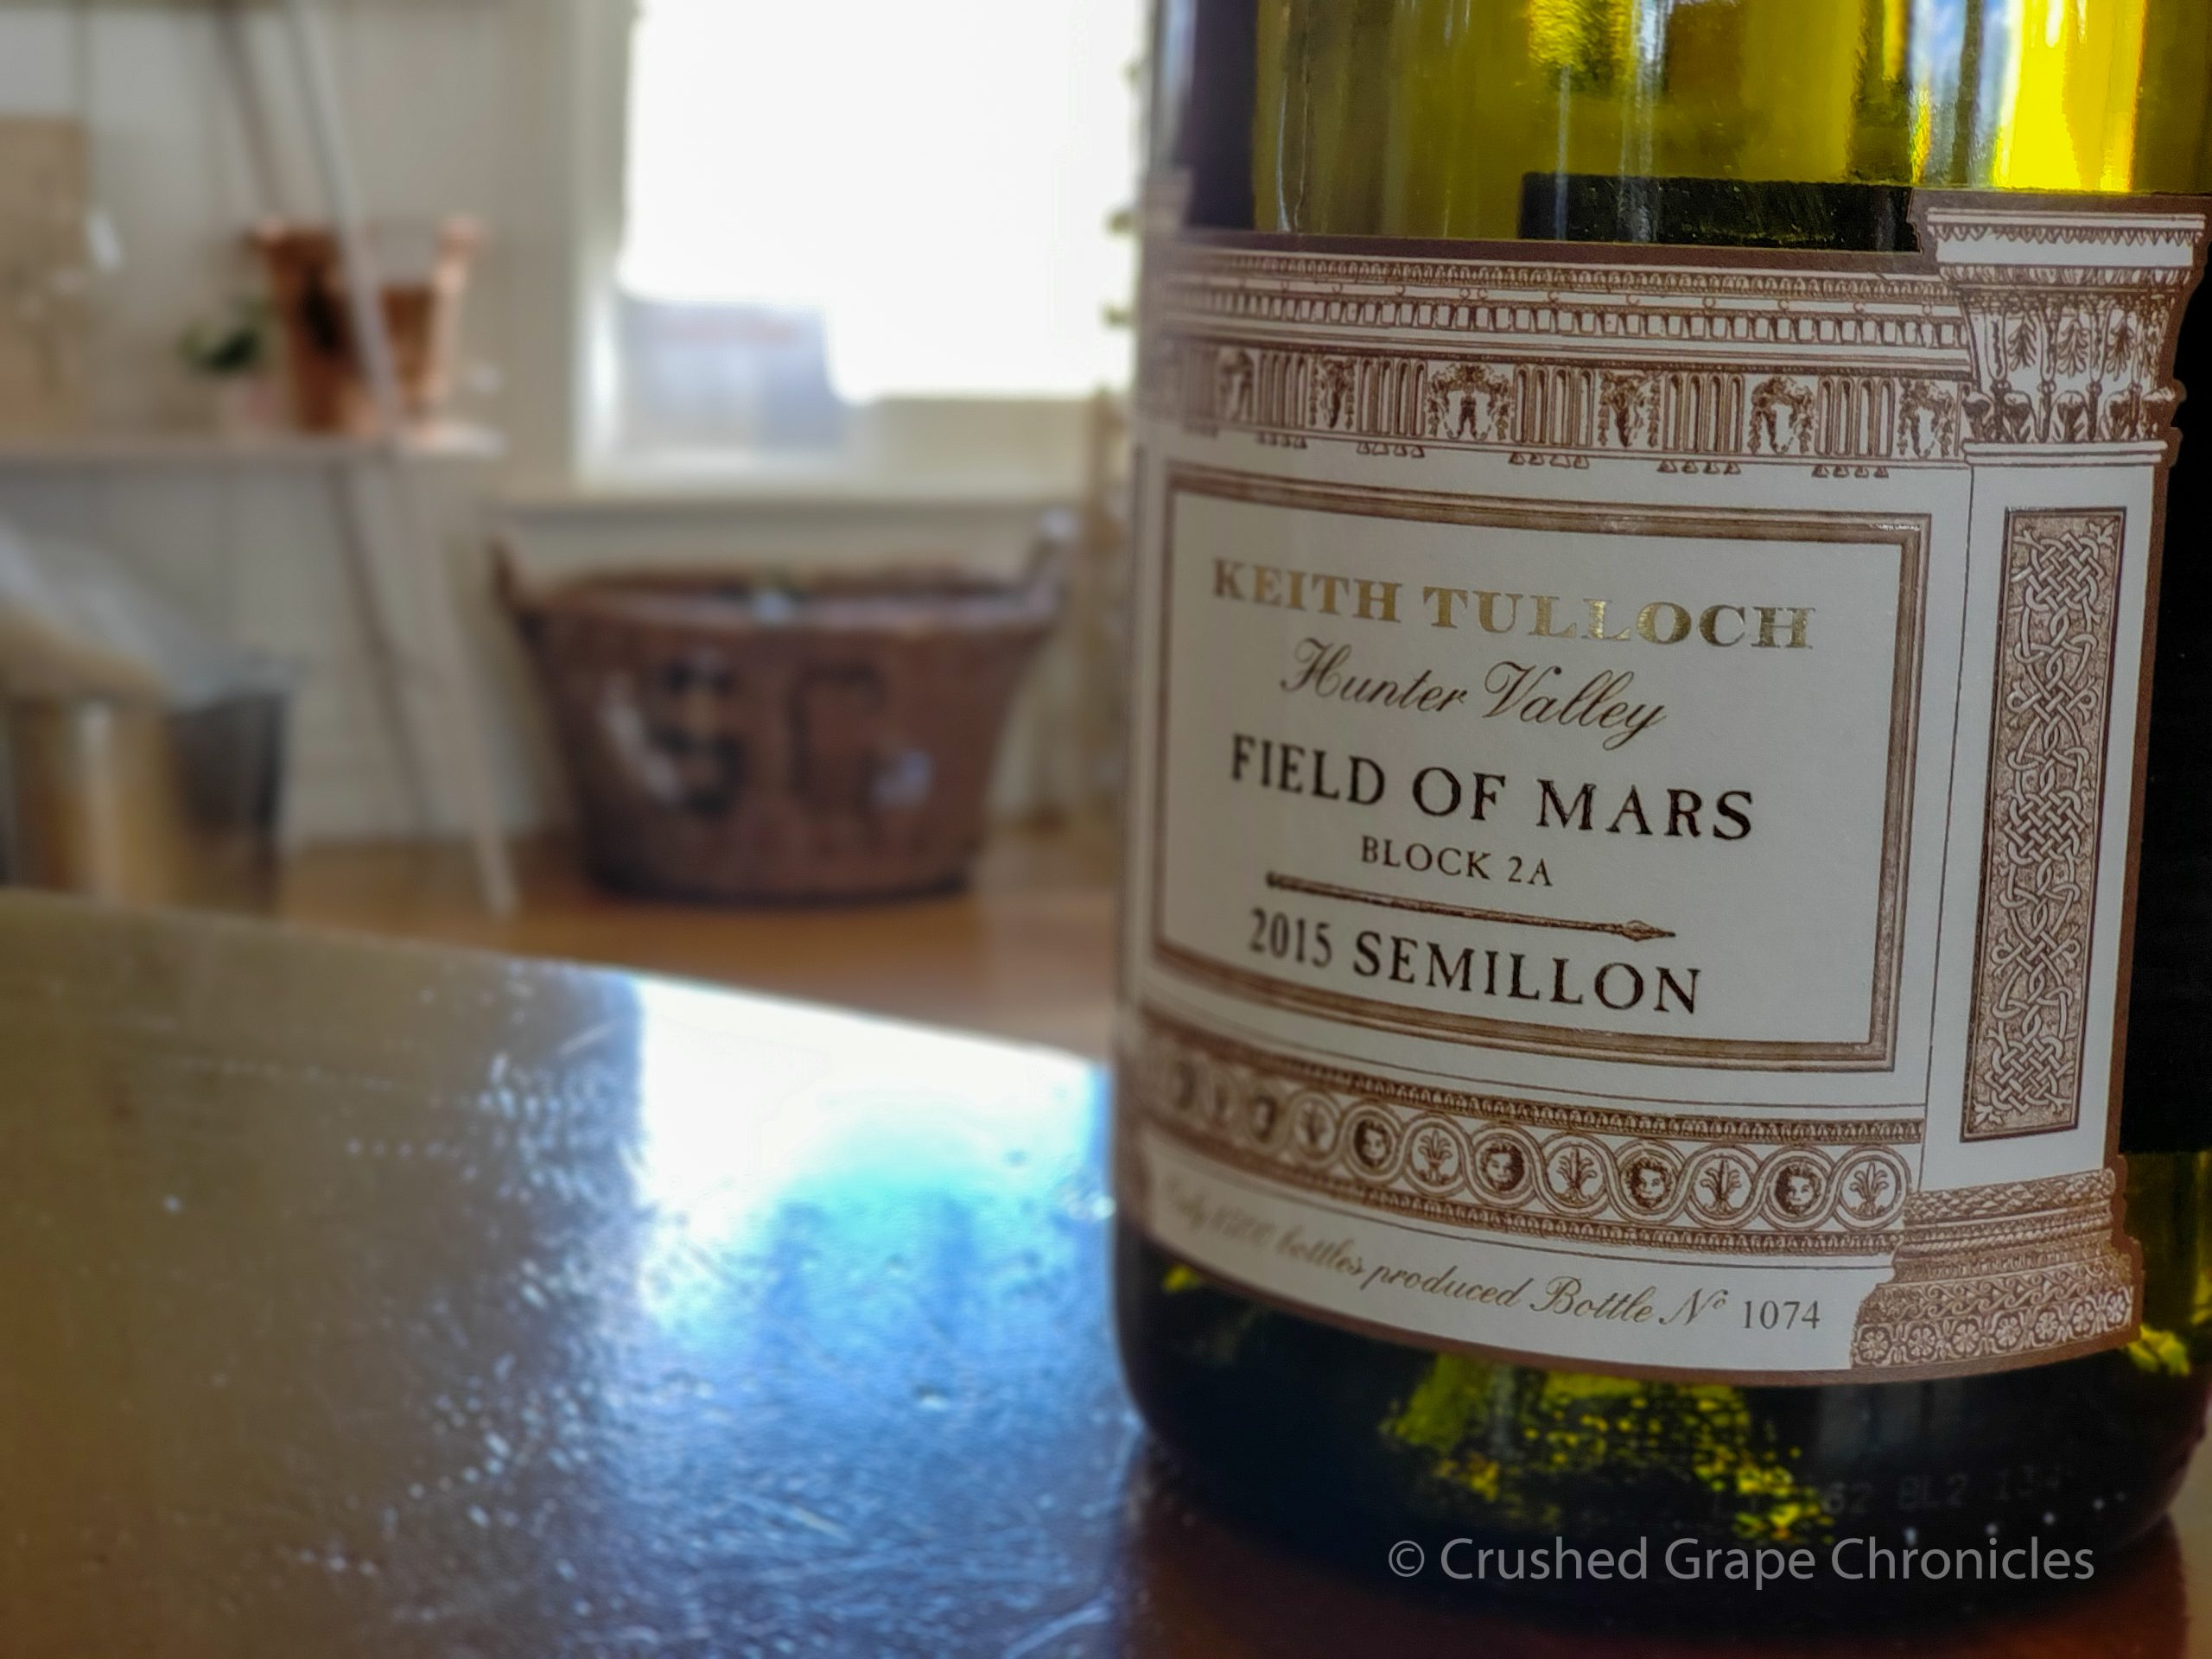 Keith Tulloch Wines in Hunter Valley Australia, a carbon neutral winery, 2015 Semillon